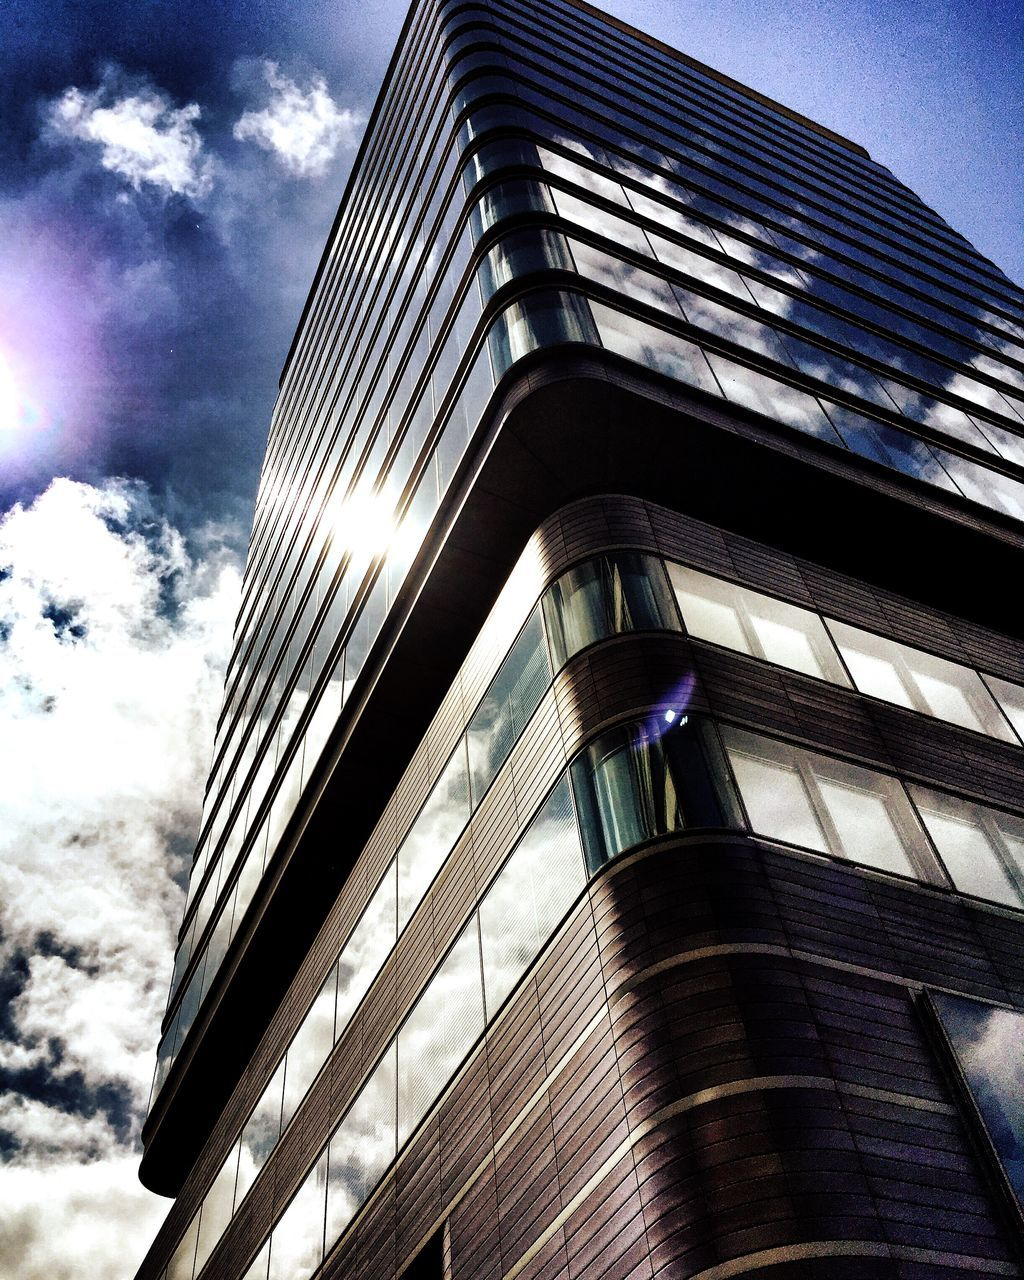 building exterior, low angle view, architecture, built structure, sky, modern, outdoors, no people, day, city, skyscraper